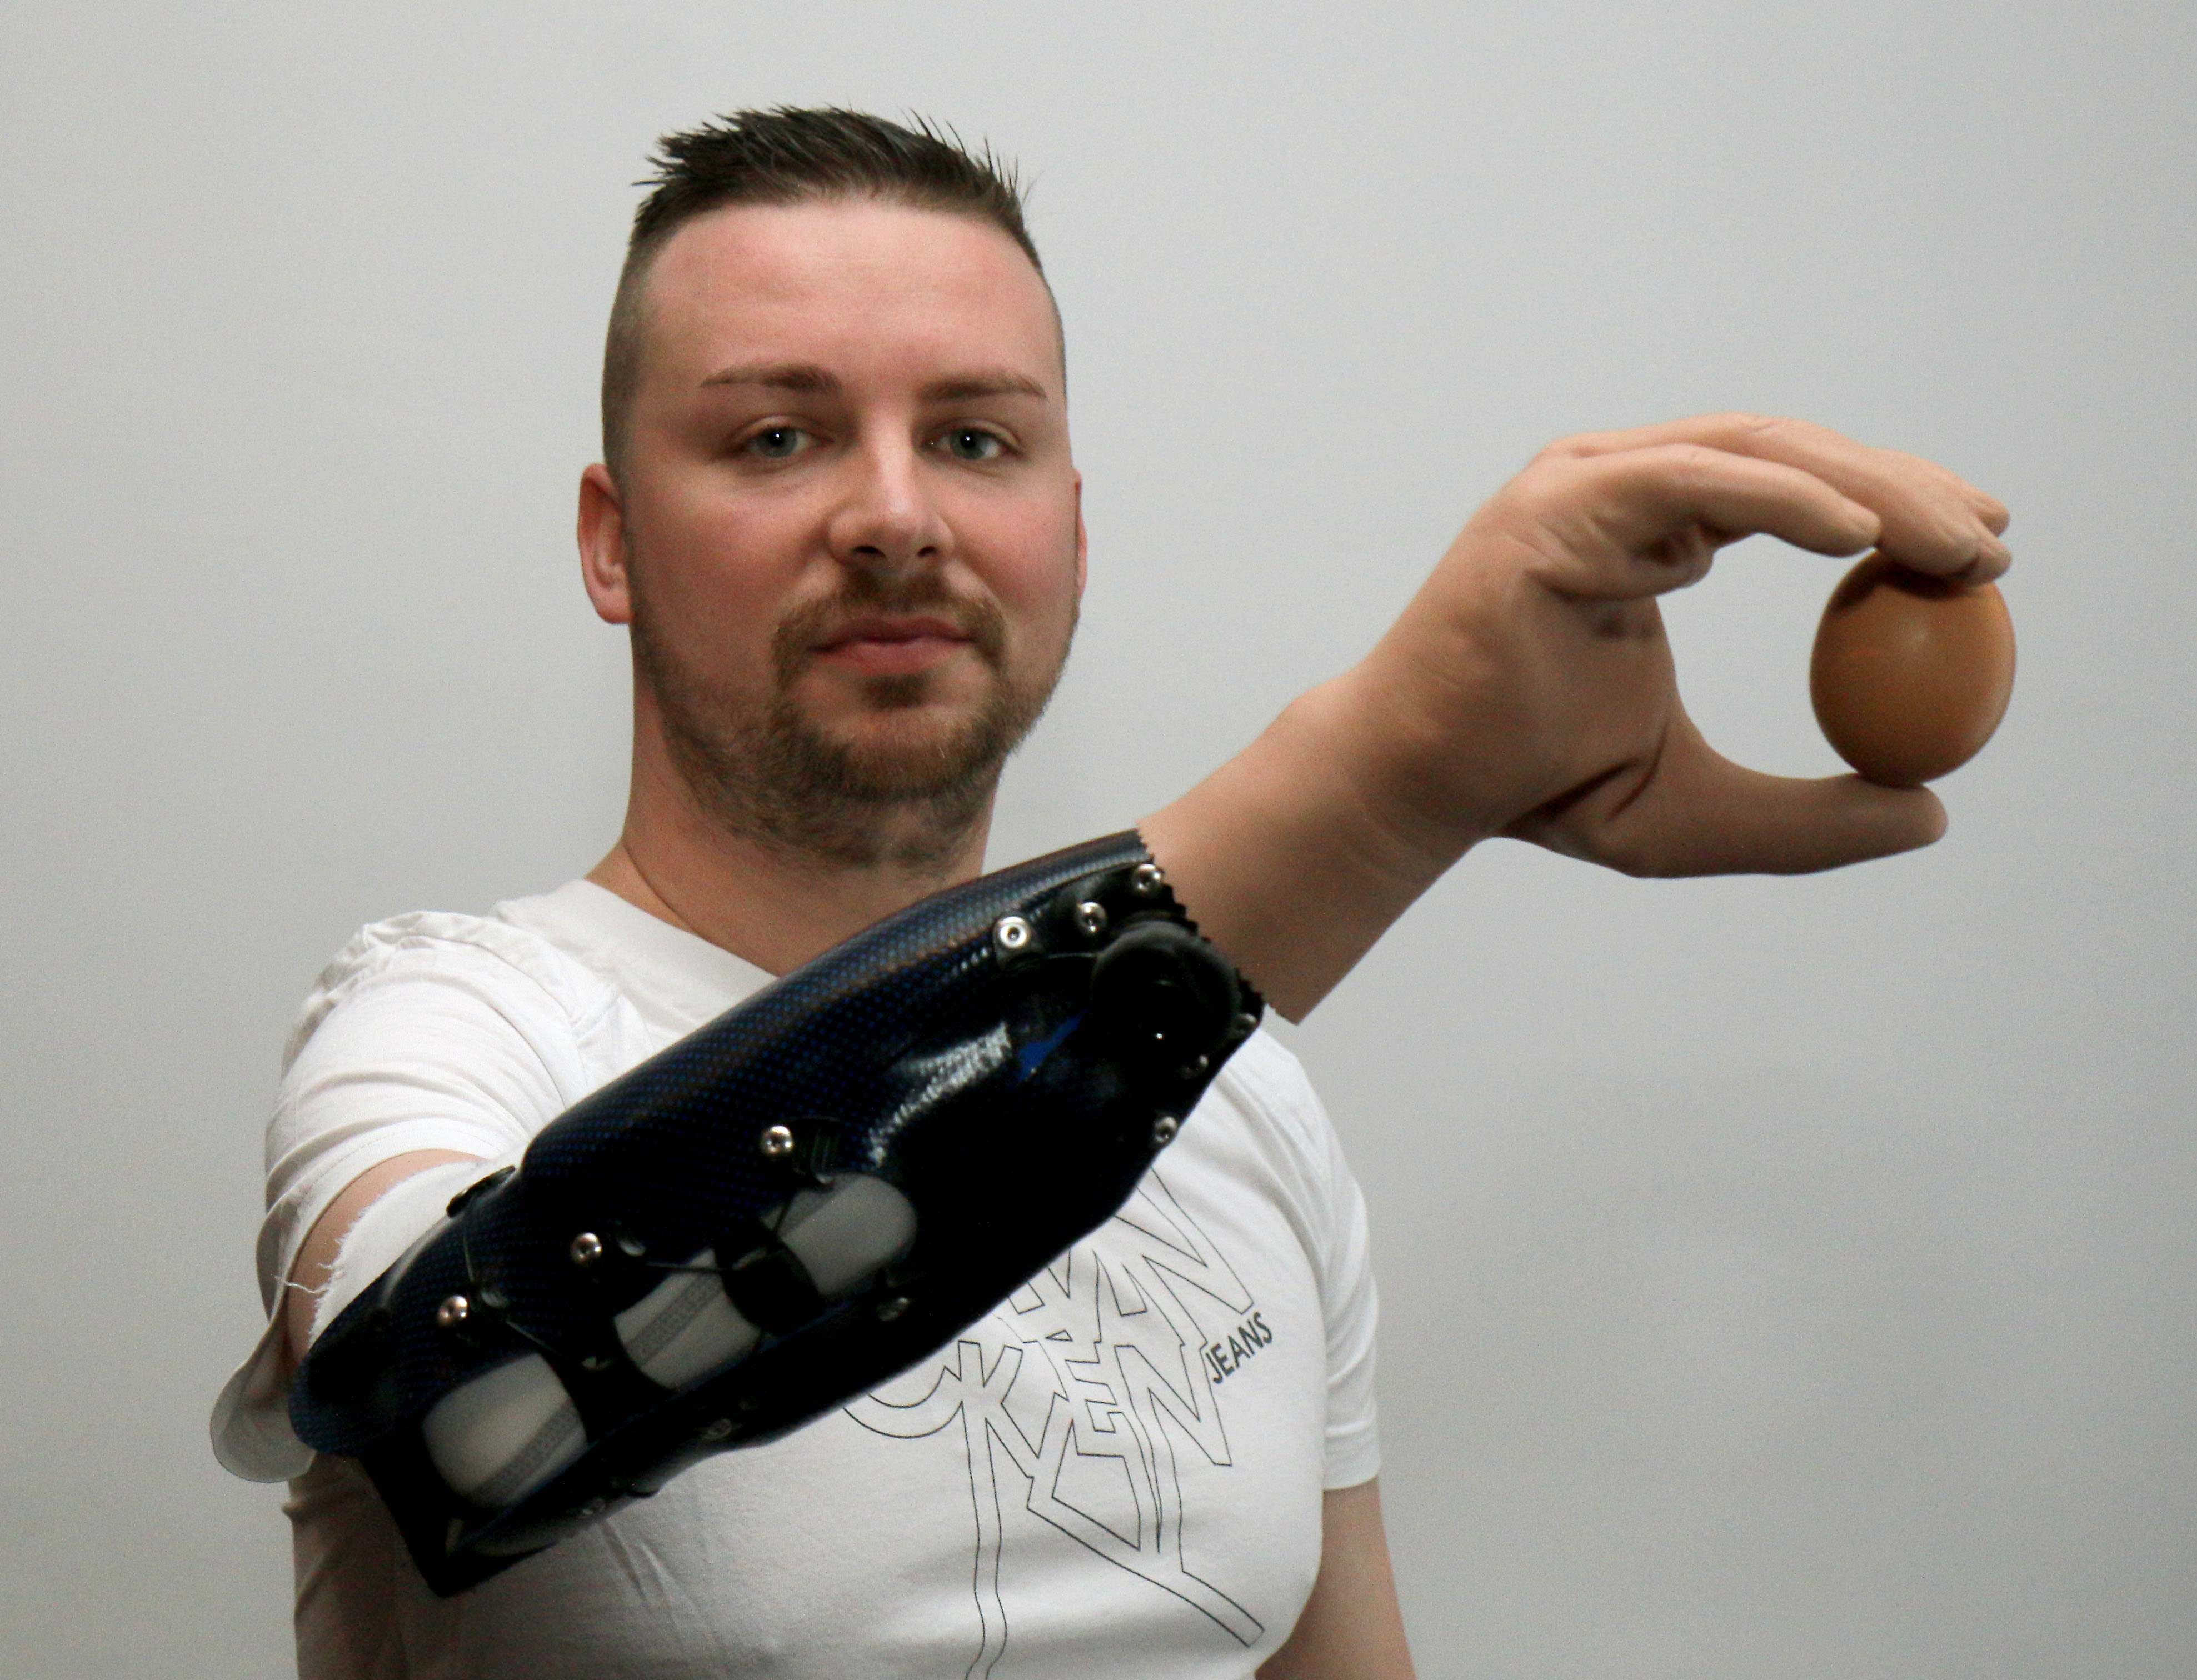 Milorad Marinkovic holds an egg with his bionic arm in Vienna, Austria on Feb. 24, 2015.